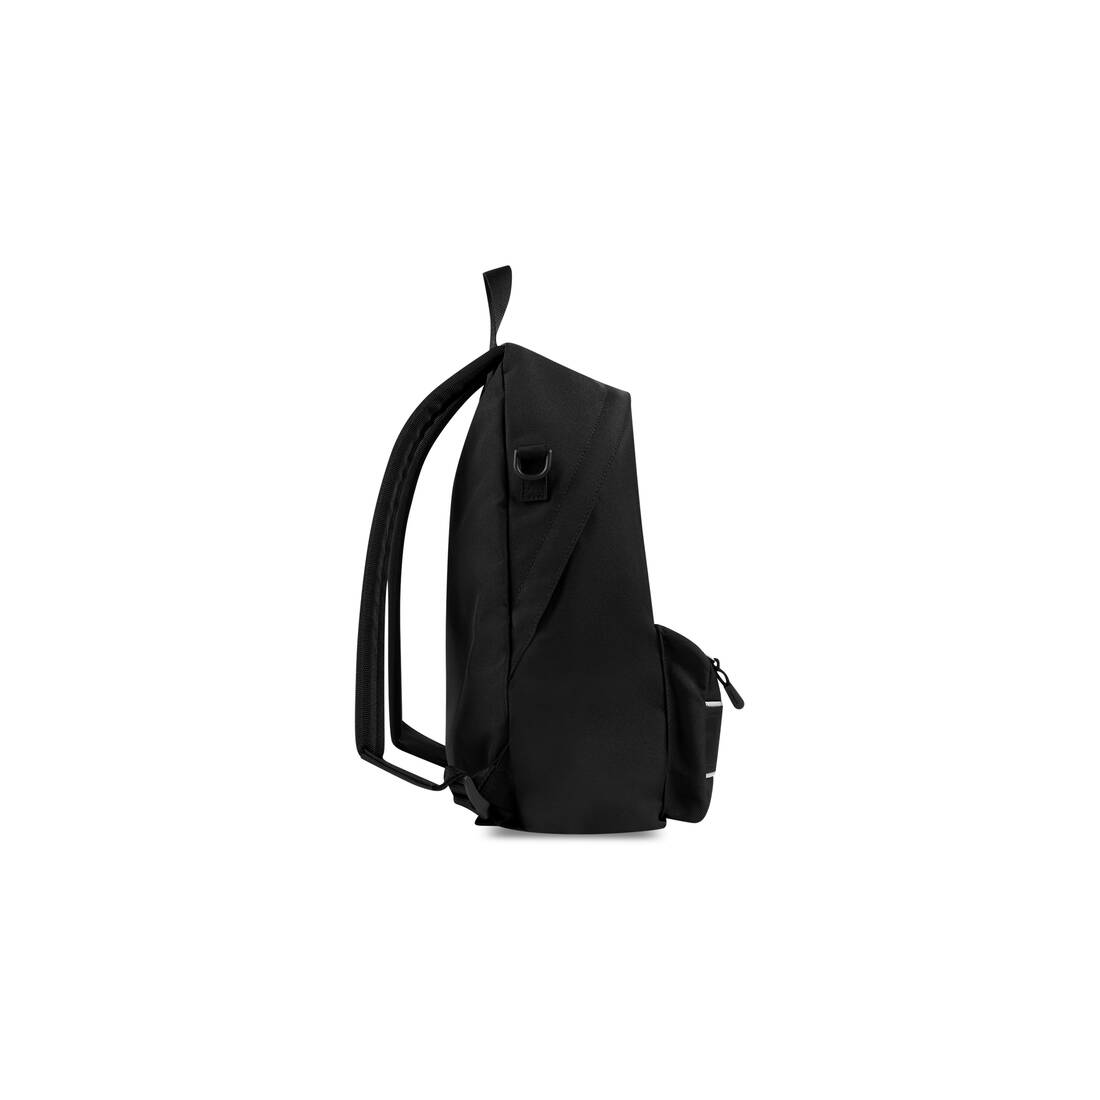 Display zoomed version of sport crossbody backpack 3